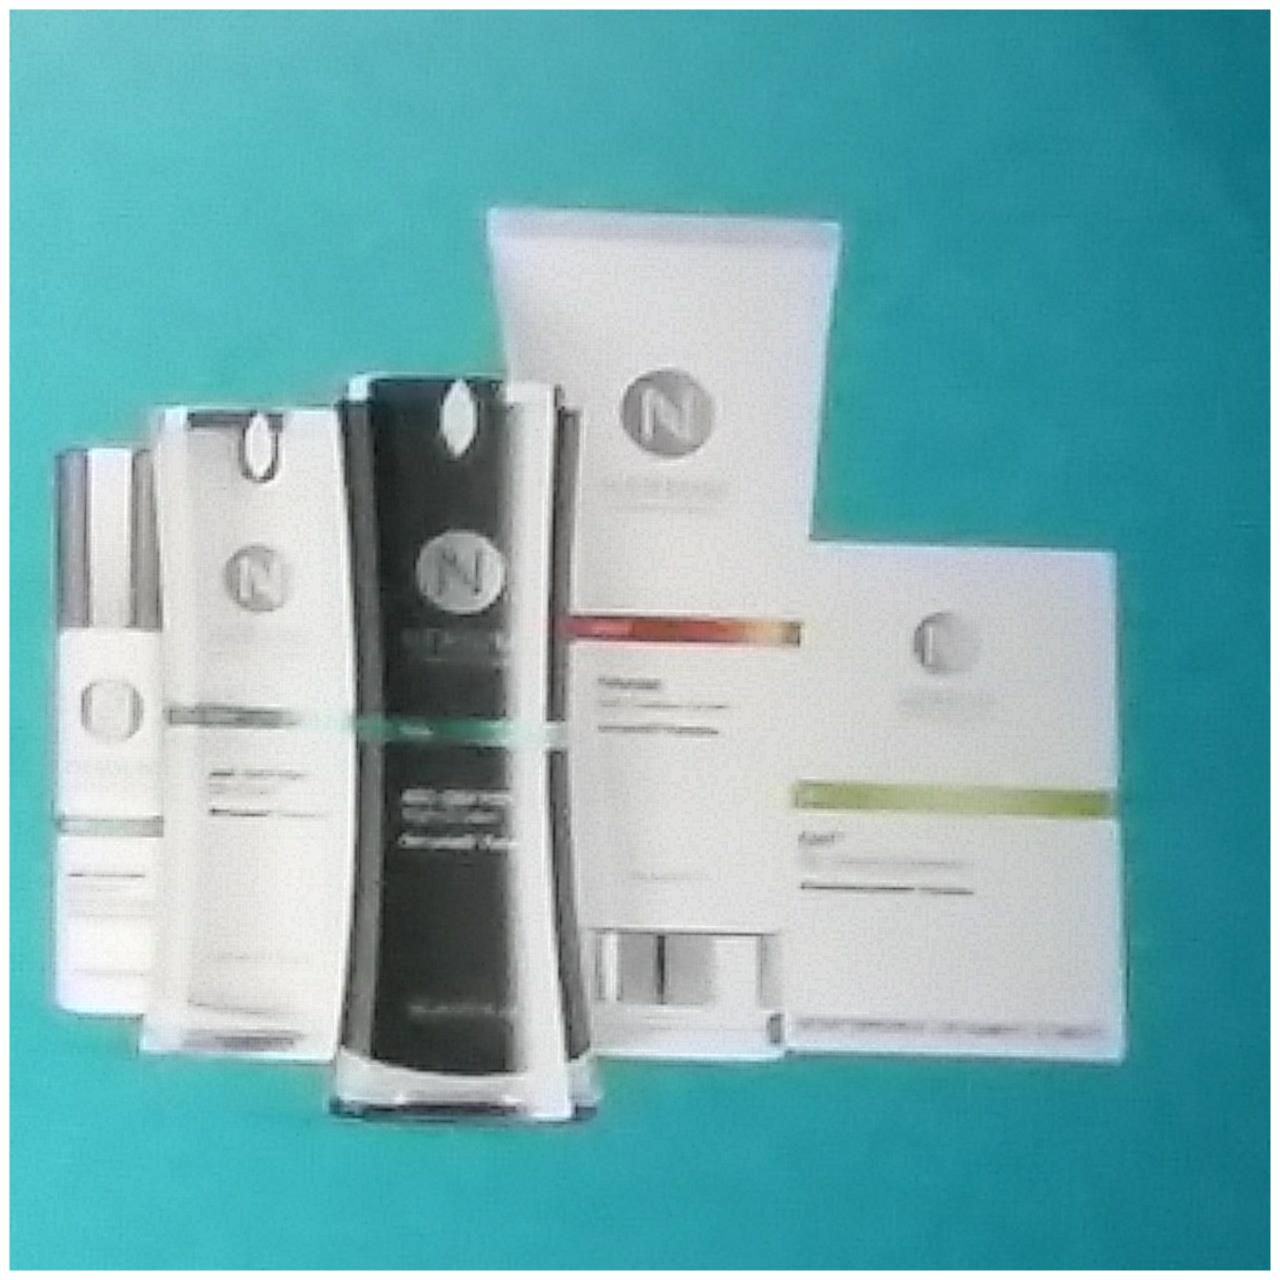 Purchase Nerium Anti-Wrinkle Product